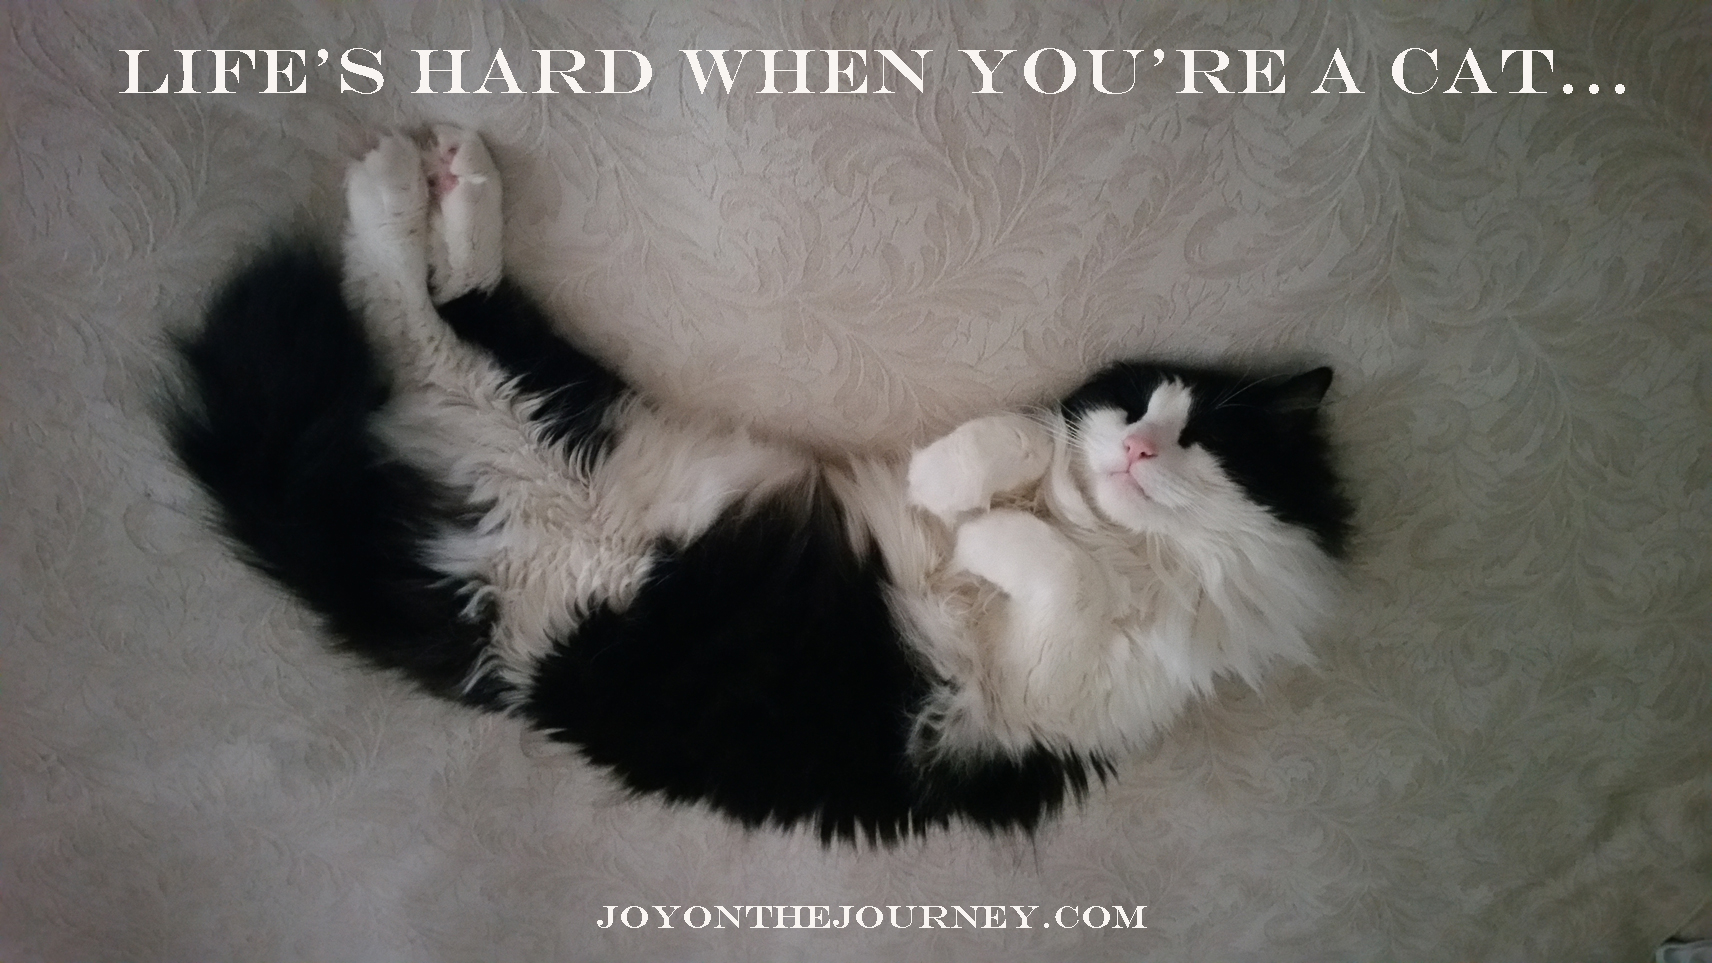 Life's-Hard-When-You're-A-Cat_JoyOnTheJourney.com